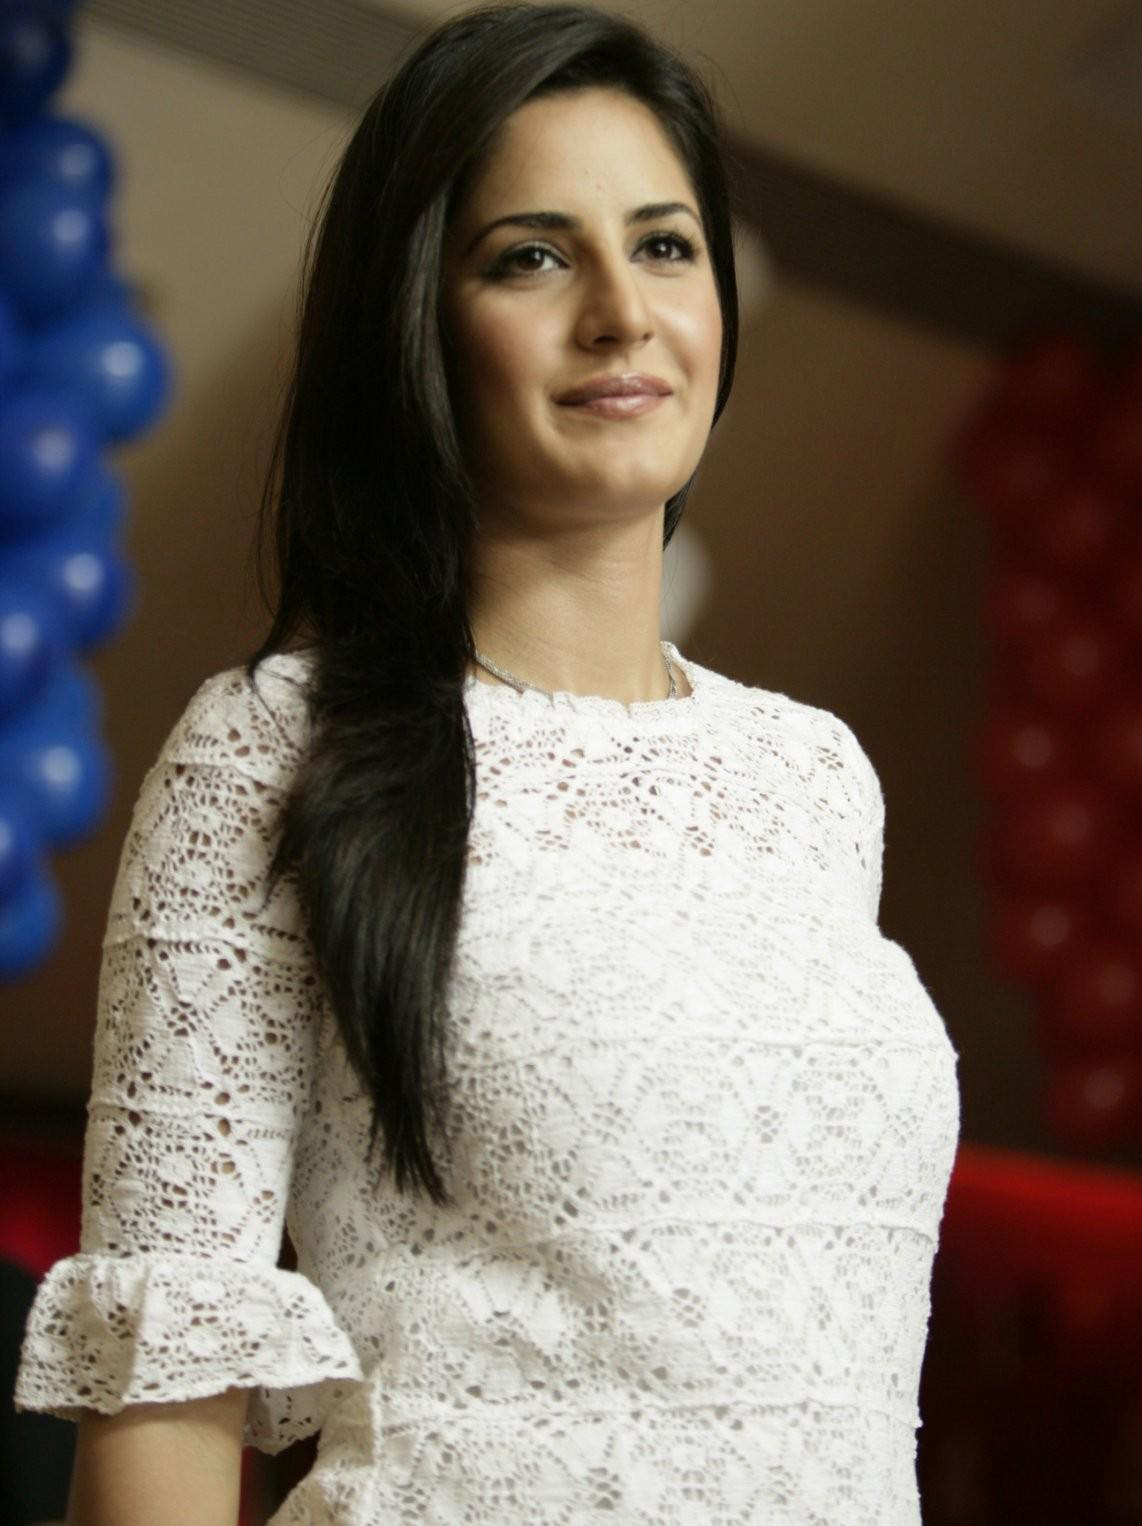 Katrina Kaif Hot Wallpapers, Hd Wallpapers Of Katrina Kaif-1325